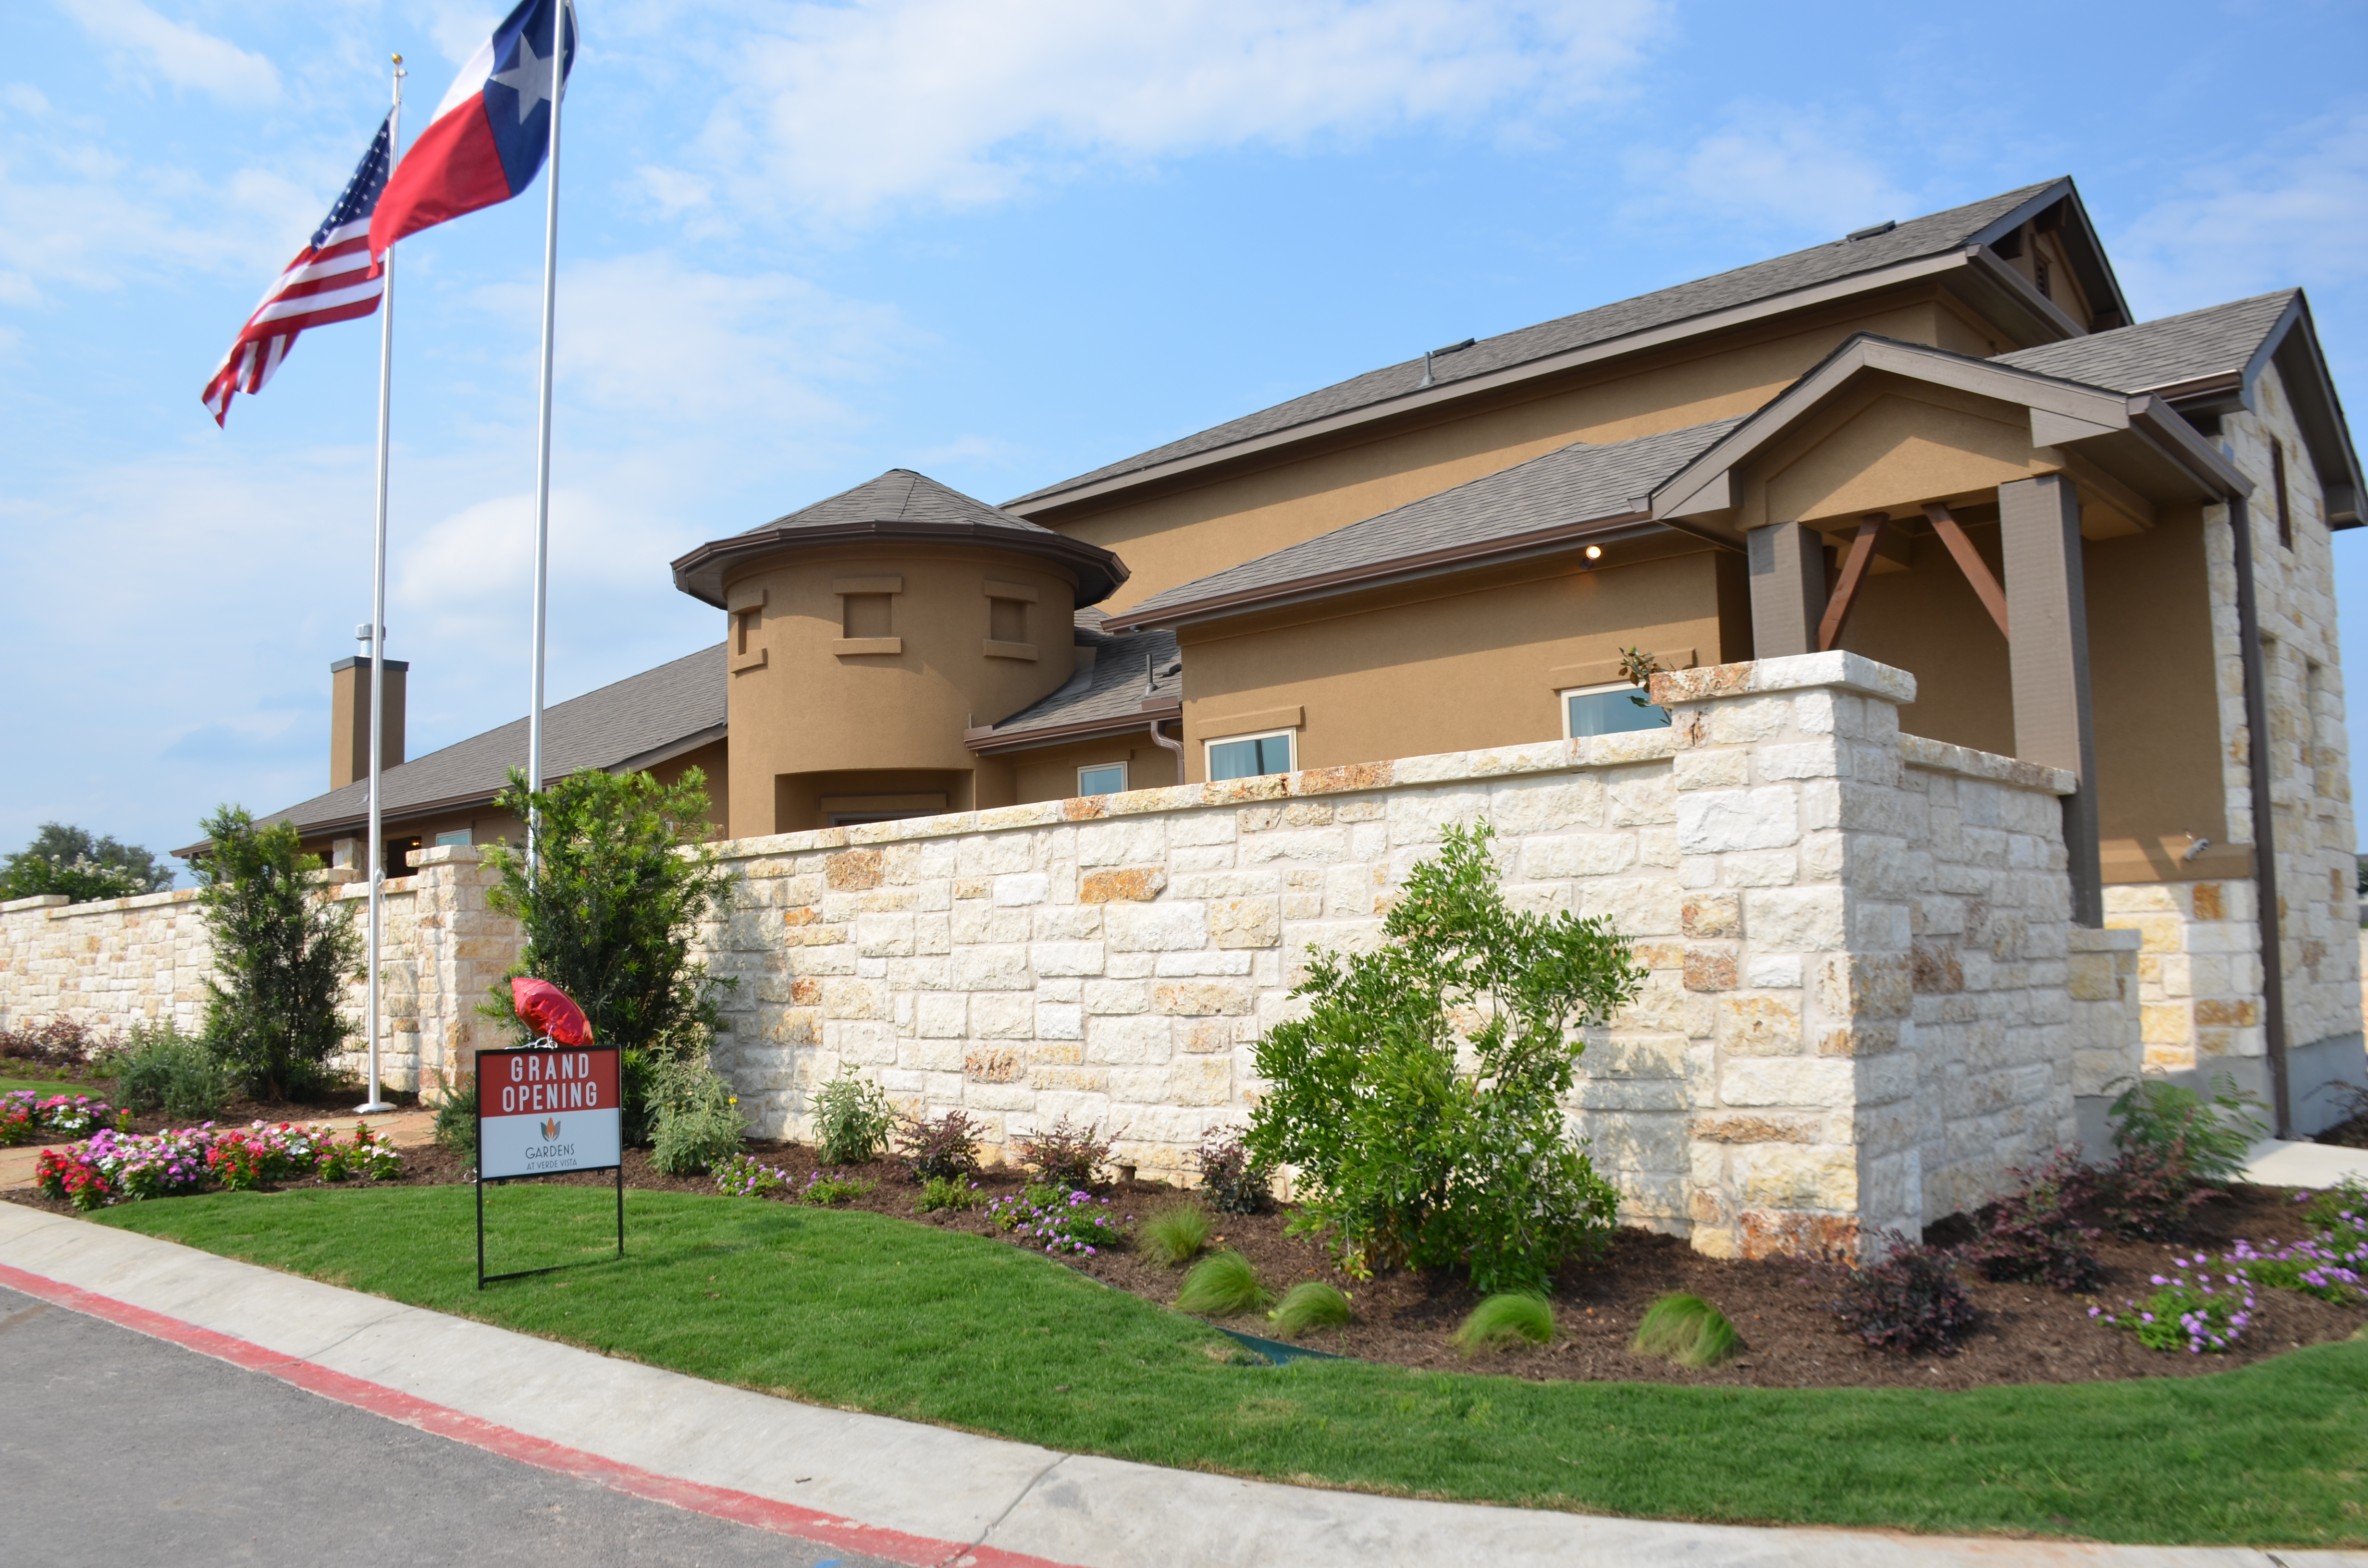 Garden, Garden Homes, Hill Country Views, New Homes, Home for Sale, Custom Homes, Custom Built, Homes, Villas, Spicewood Communities, High End Finishes, Spacious, Builder, Homes Active Lifestyles, Fall in the Texas Hill Country